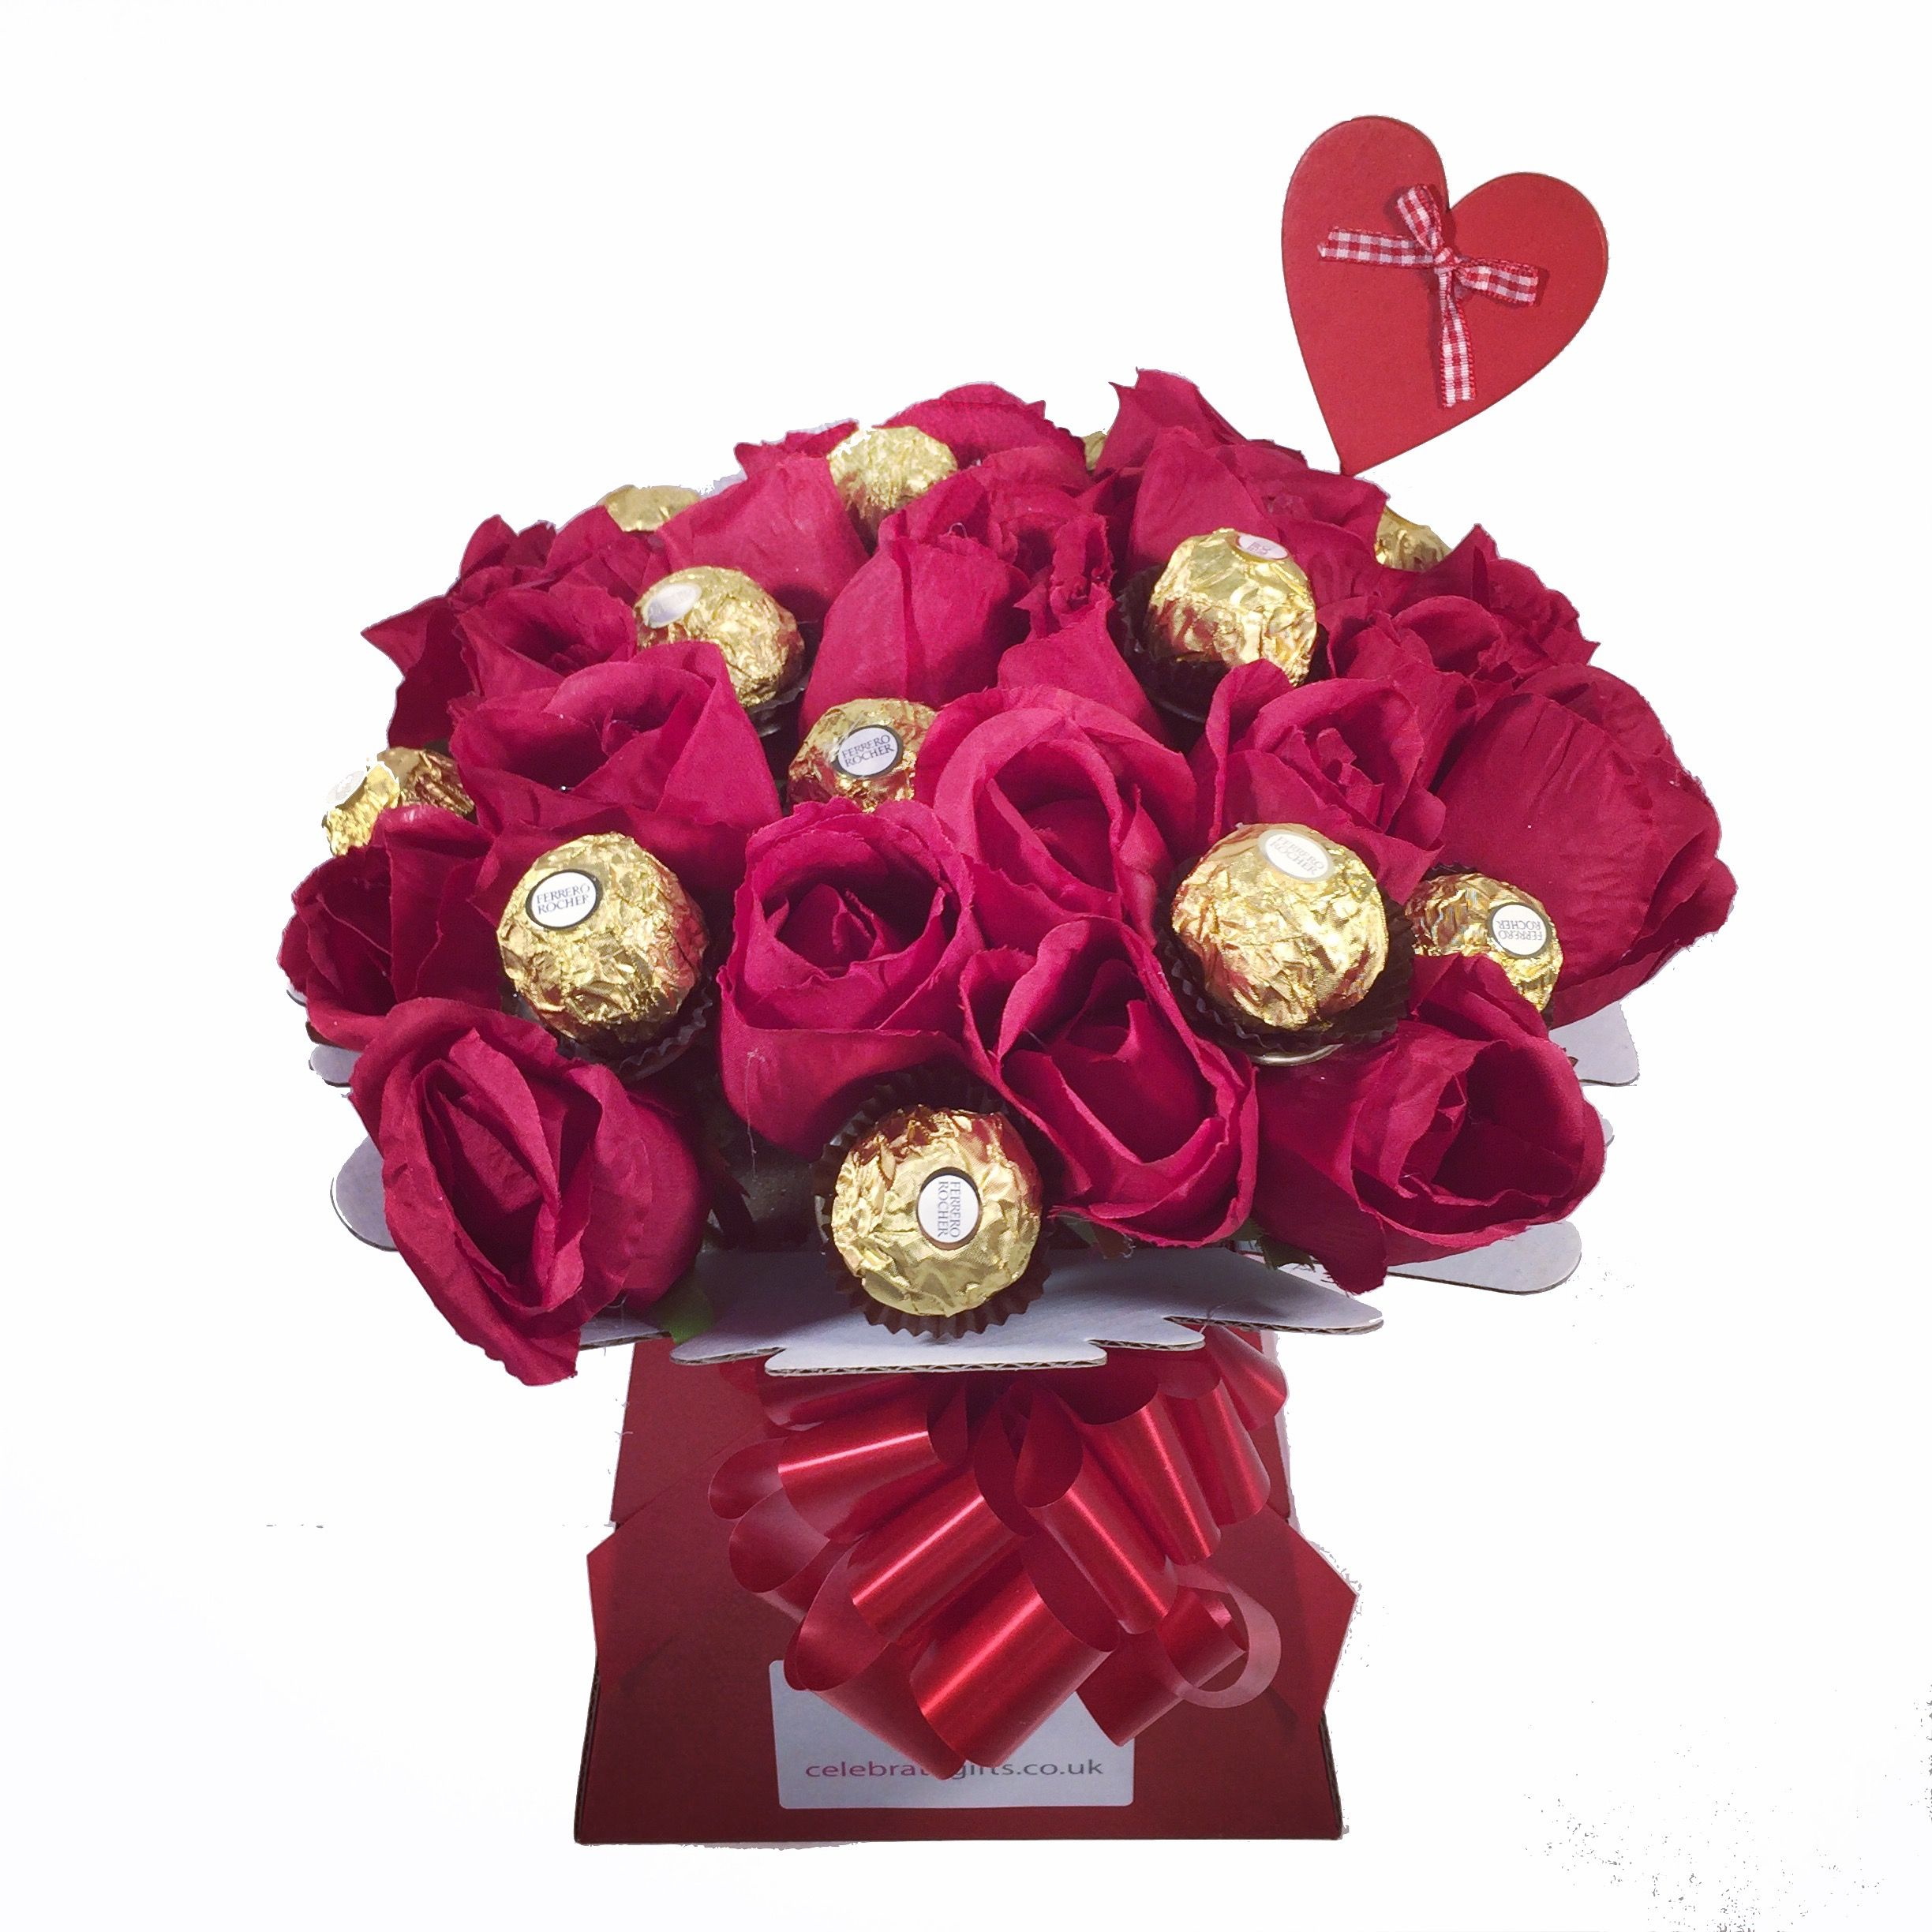 Pin By Sojay On Sojay Pinterest Chocolate Bouquet And Candy Bouquet